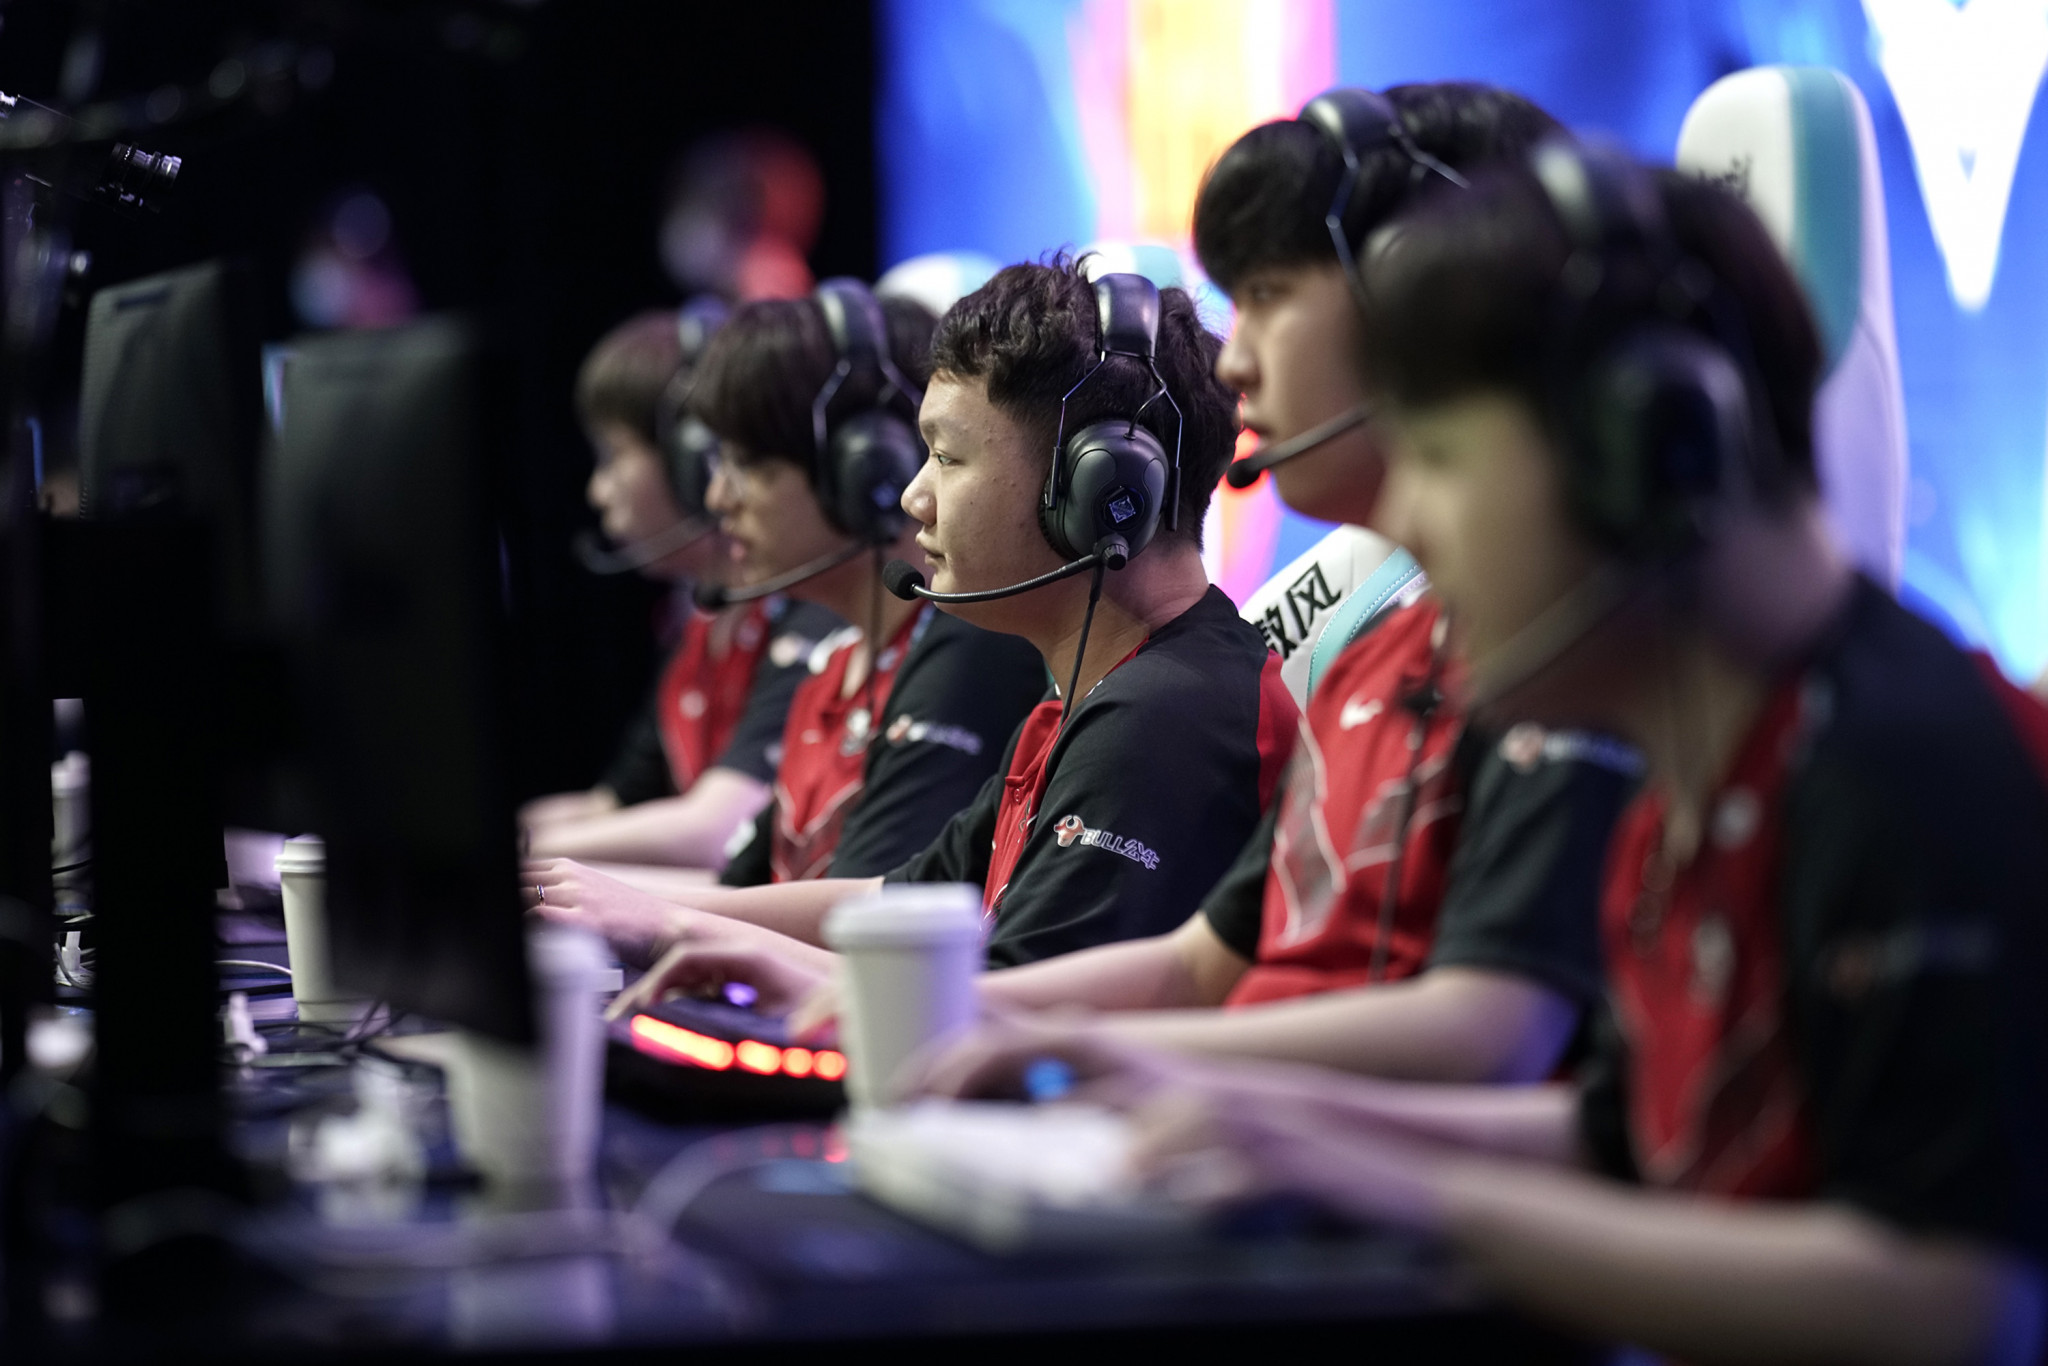 A study found esports players are healthier than the general population in terms of weight ©Getty Images